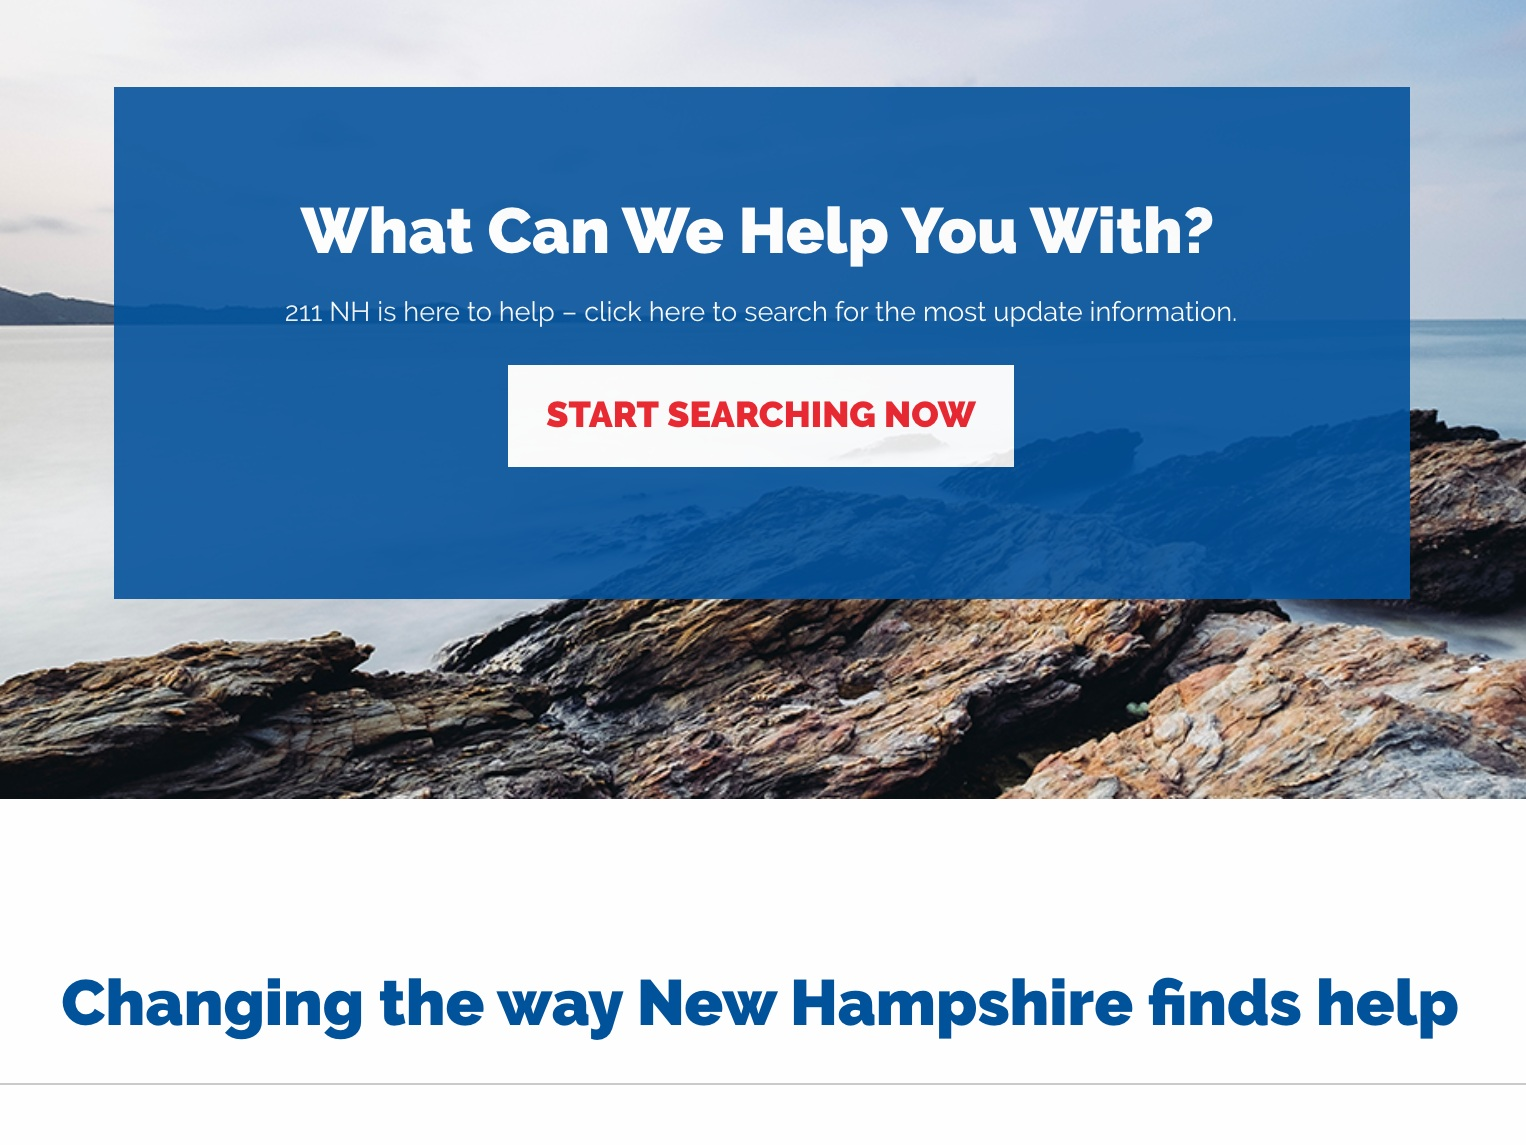 new hampshire helpline - Access up to date resources from specially trained Information and Referral Specialists. 211 NH is available 24 hours, 365 days a year. Multilingual assistance and TDD access is also available.